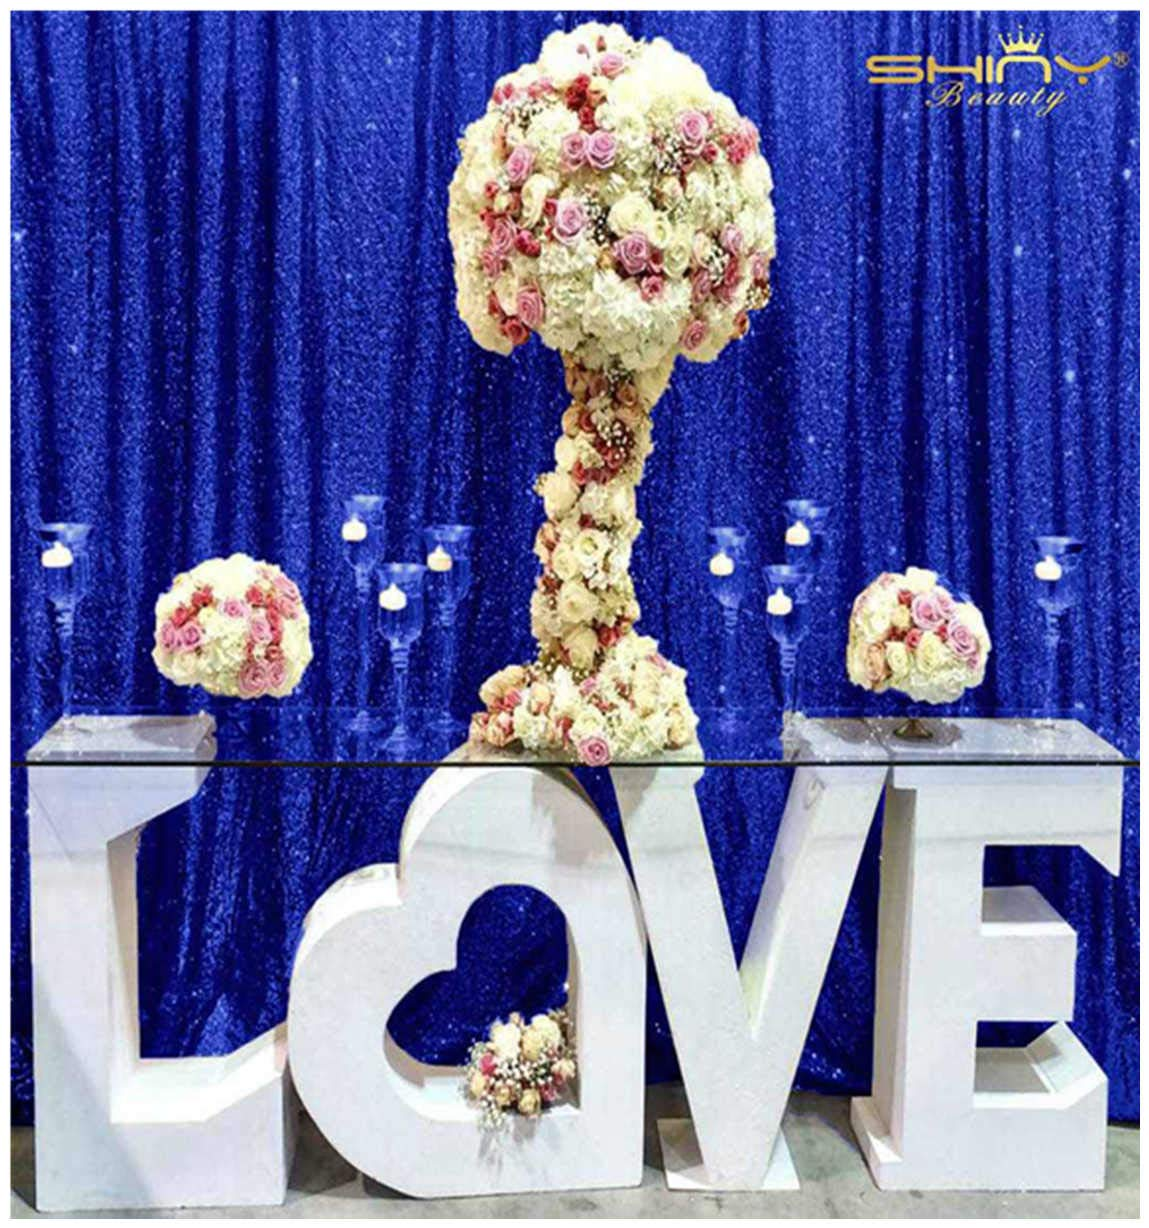 Bride S Choice 6ftx6ft Royal Blue Sequin Photo Booth Wedding Decoration Fabric Baby Shower Royal Blue Sequin Backdrop Sequin Tablecloth Sequin